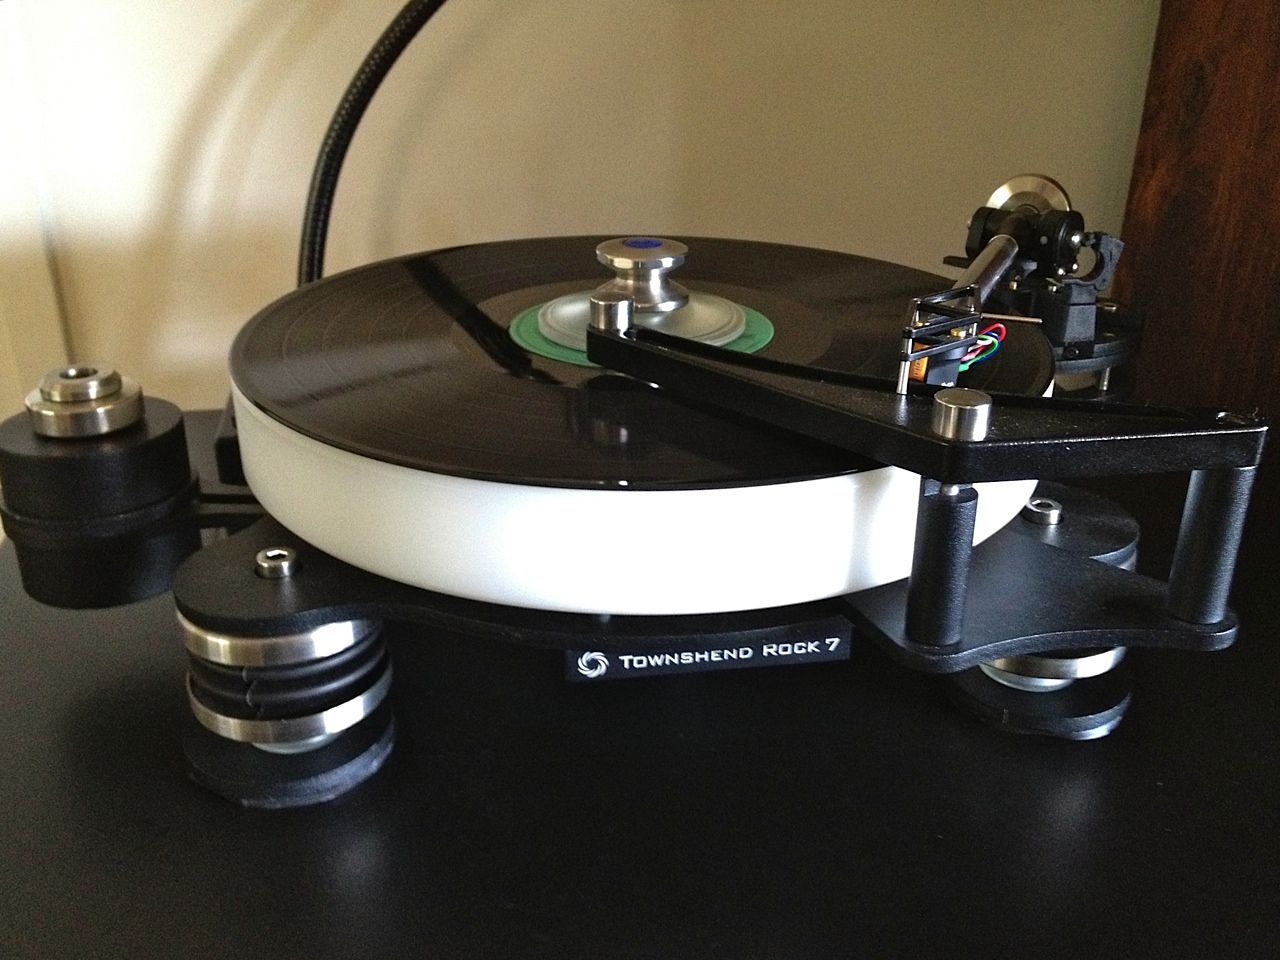 Townshend Rock 7 Archiving Turntable | Platine vinyle